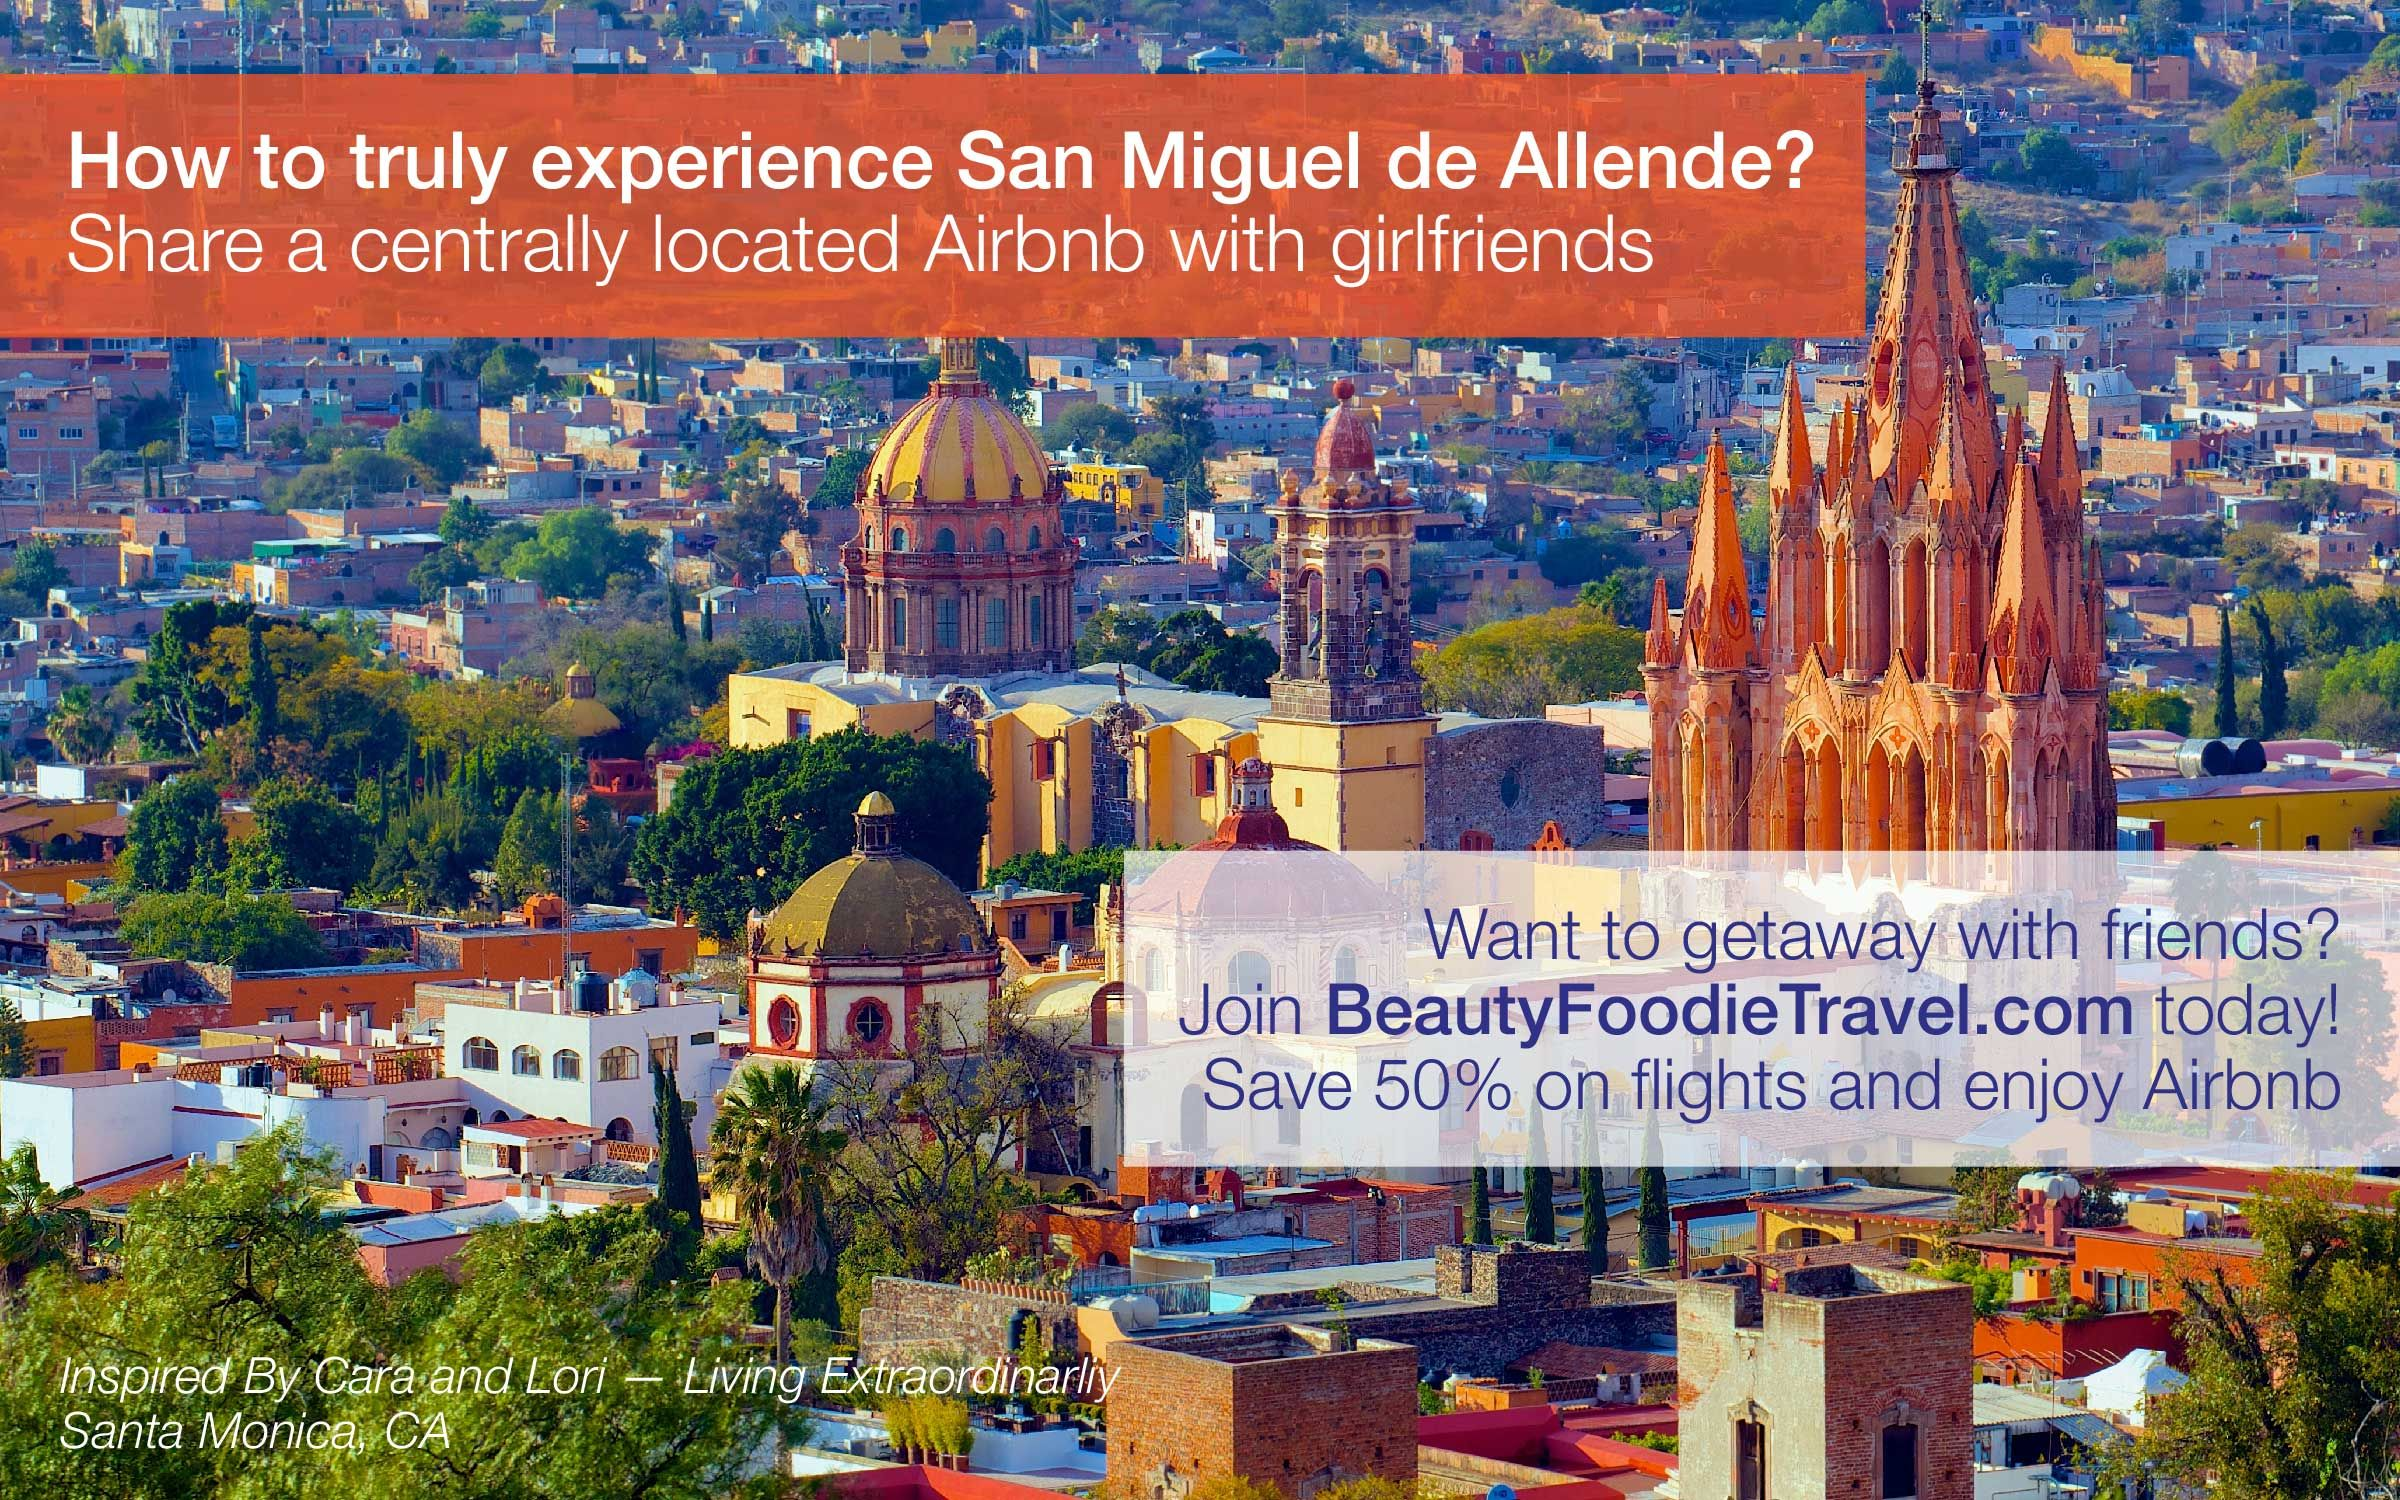 san miguel de allende muslim girl personals Thousands of americans are flocking to the quaint mexican city of san miguel de allende in search  muslim-american women  13-year-old girl trapped for hours .